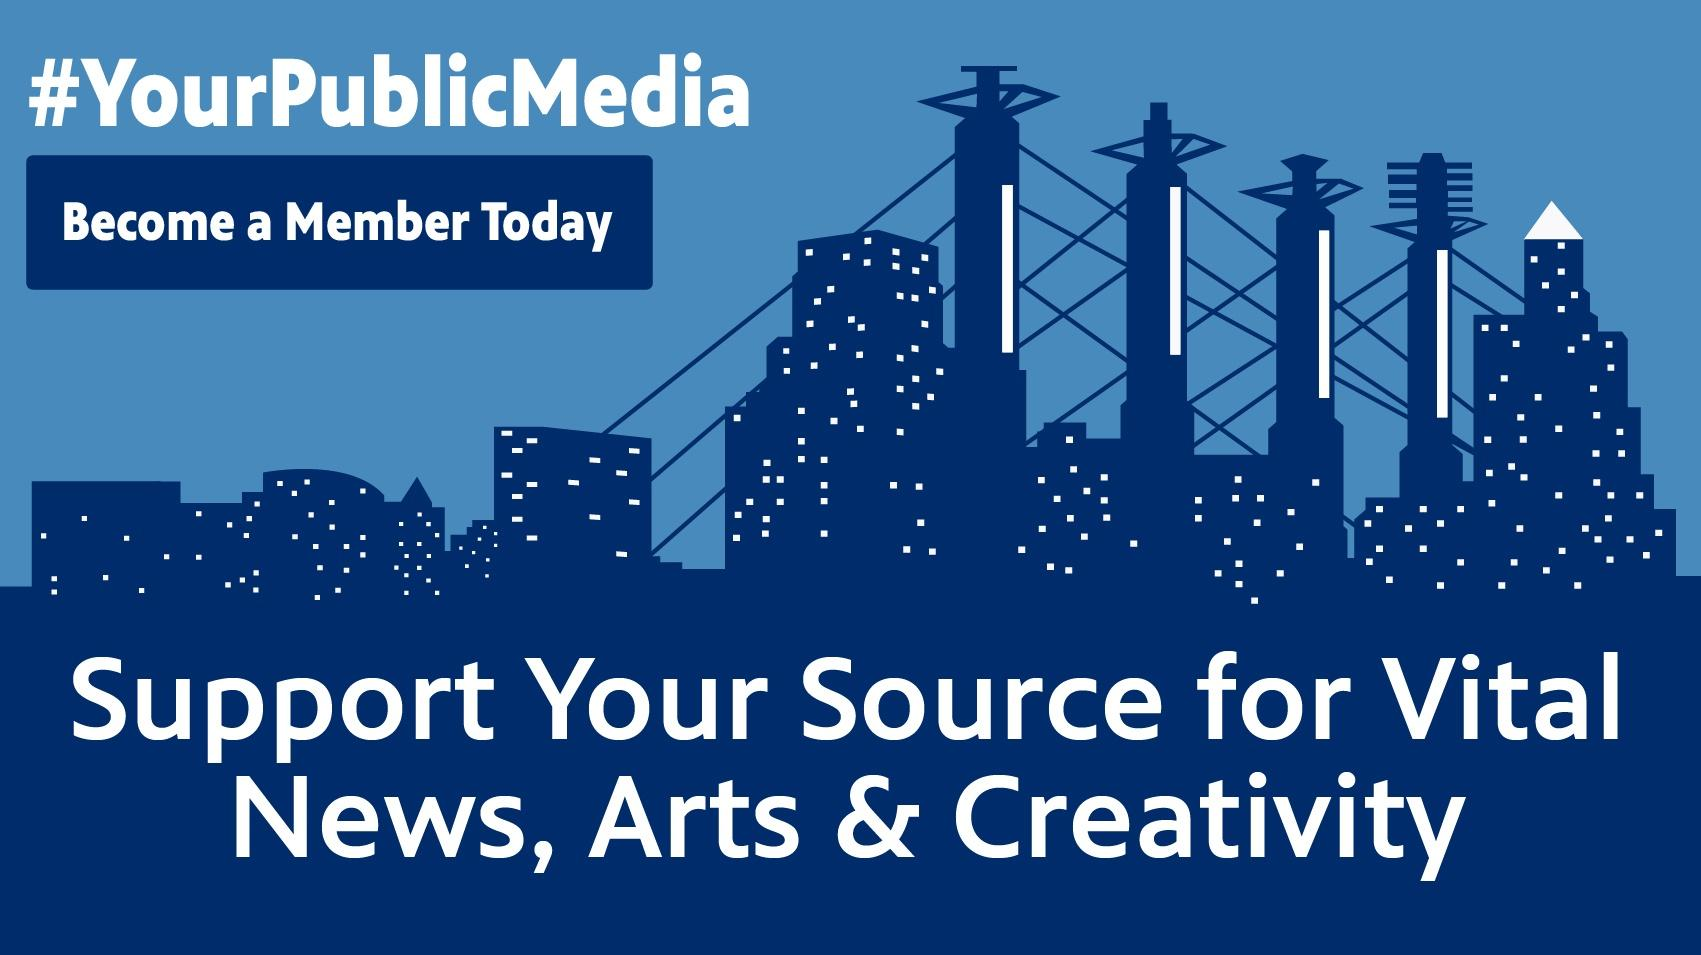 #YourPublicMedia Become a Member Today Support Your Source for Vital News, Arts & Creativity